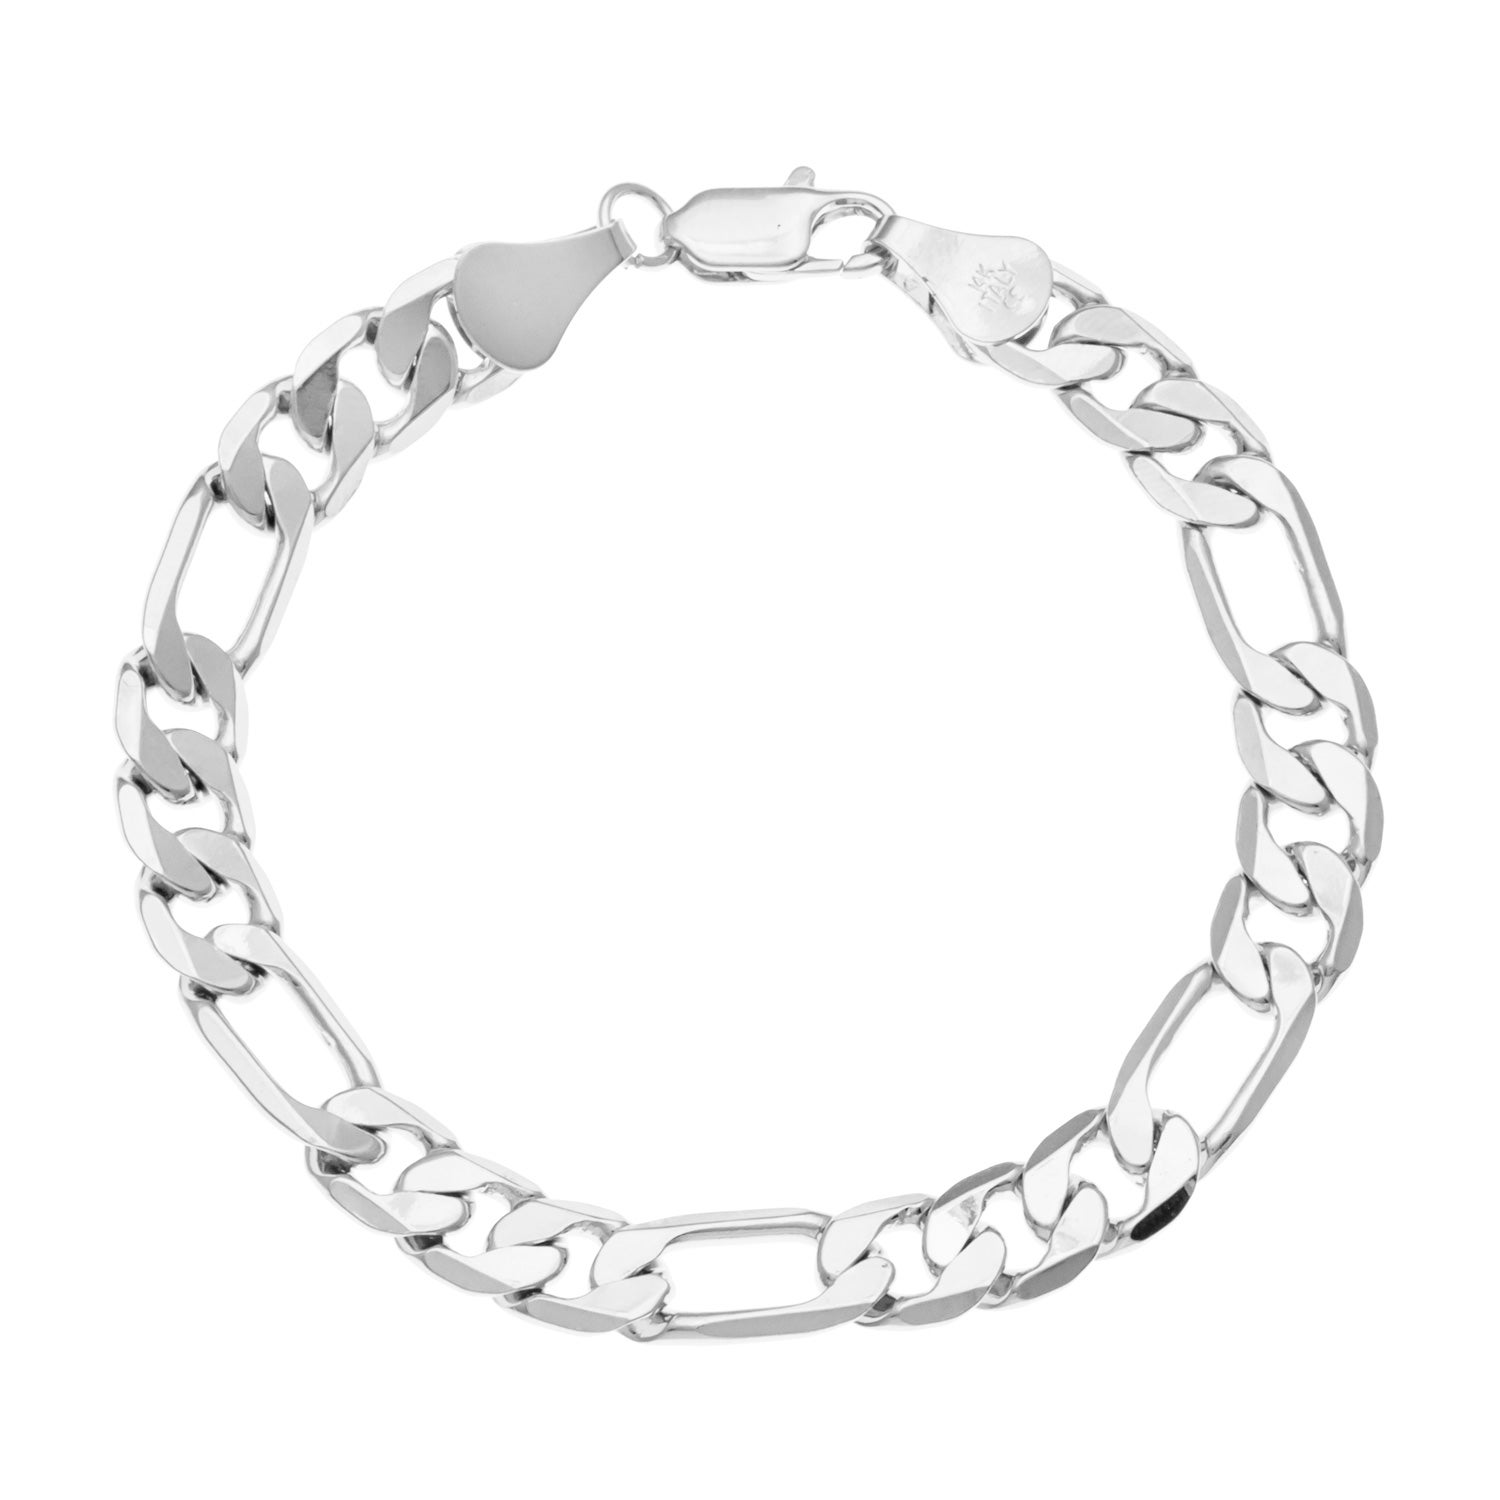 Simon Frank 14k White Gold Overlay 8 Inch Figaro Chain Bracelet On Free Shipping Orders Over 45 3469654